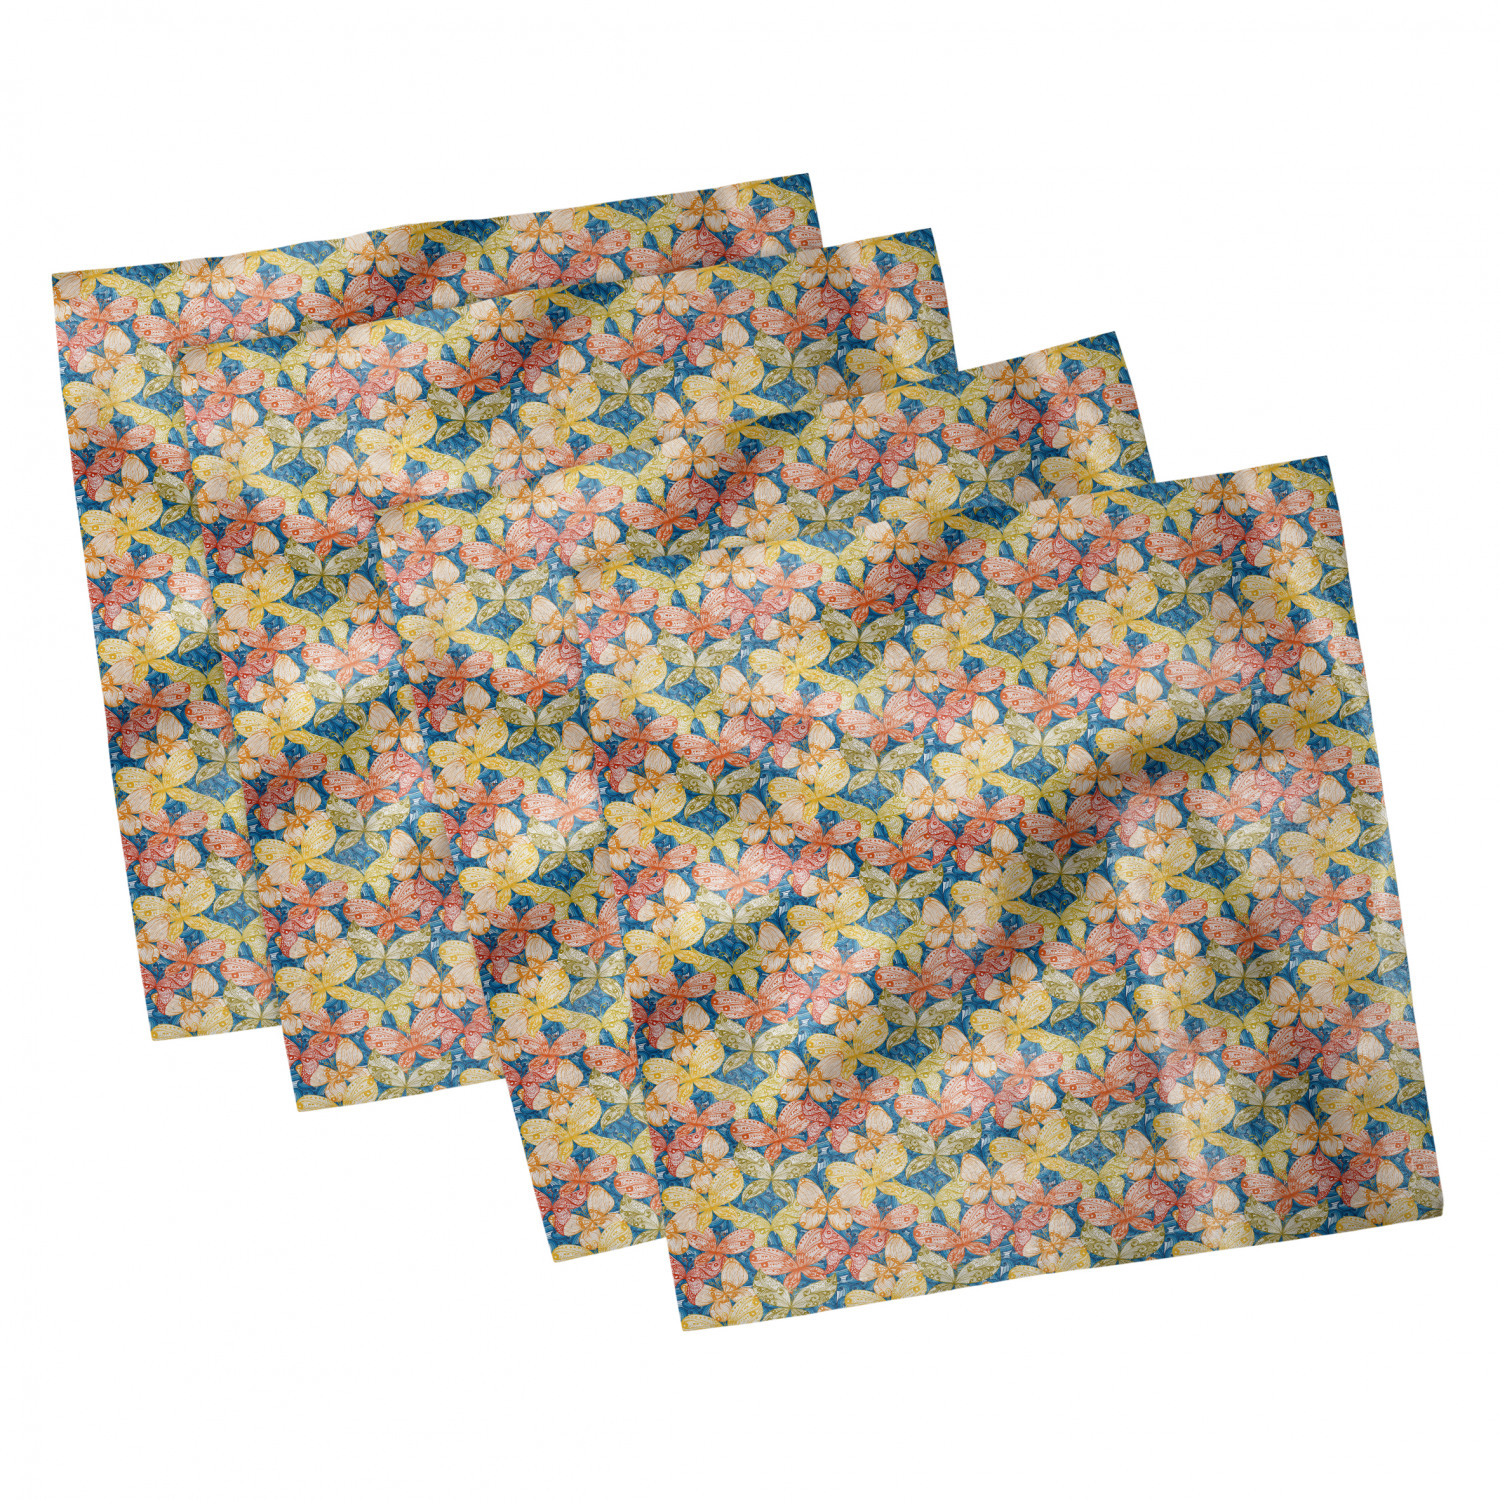 thumbnail 17 - Ambesonne-Leaves-Forest-Decorative-Satin-Napkins-Set-of-4-Party-Dinner-Fabric